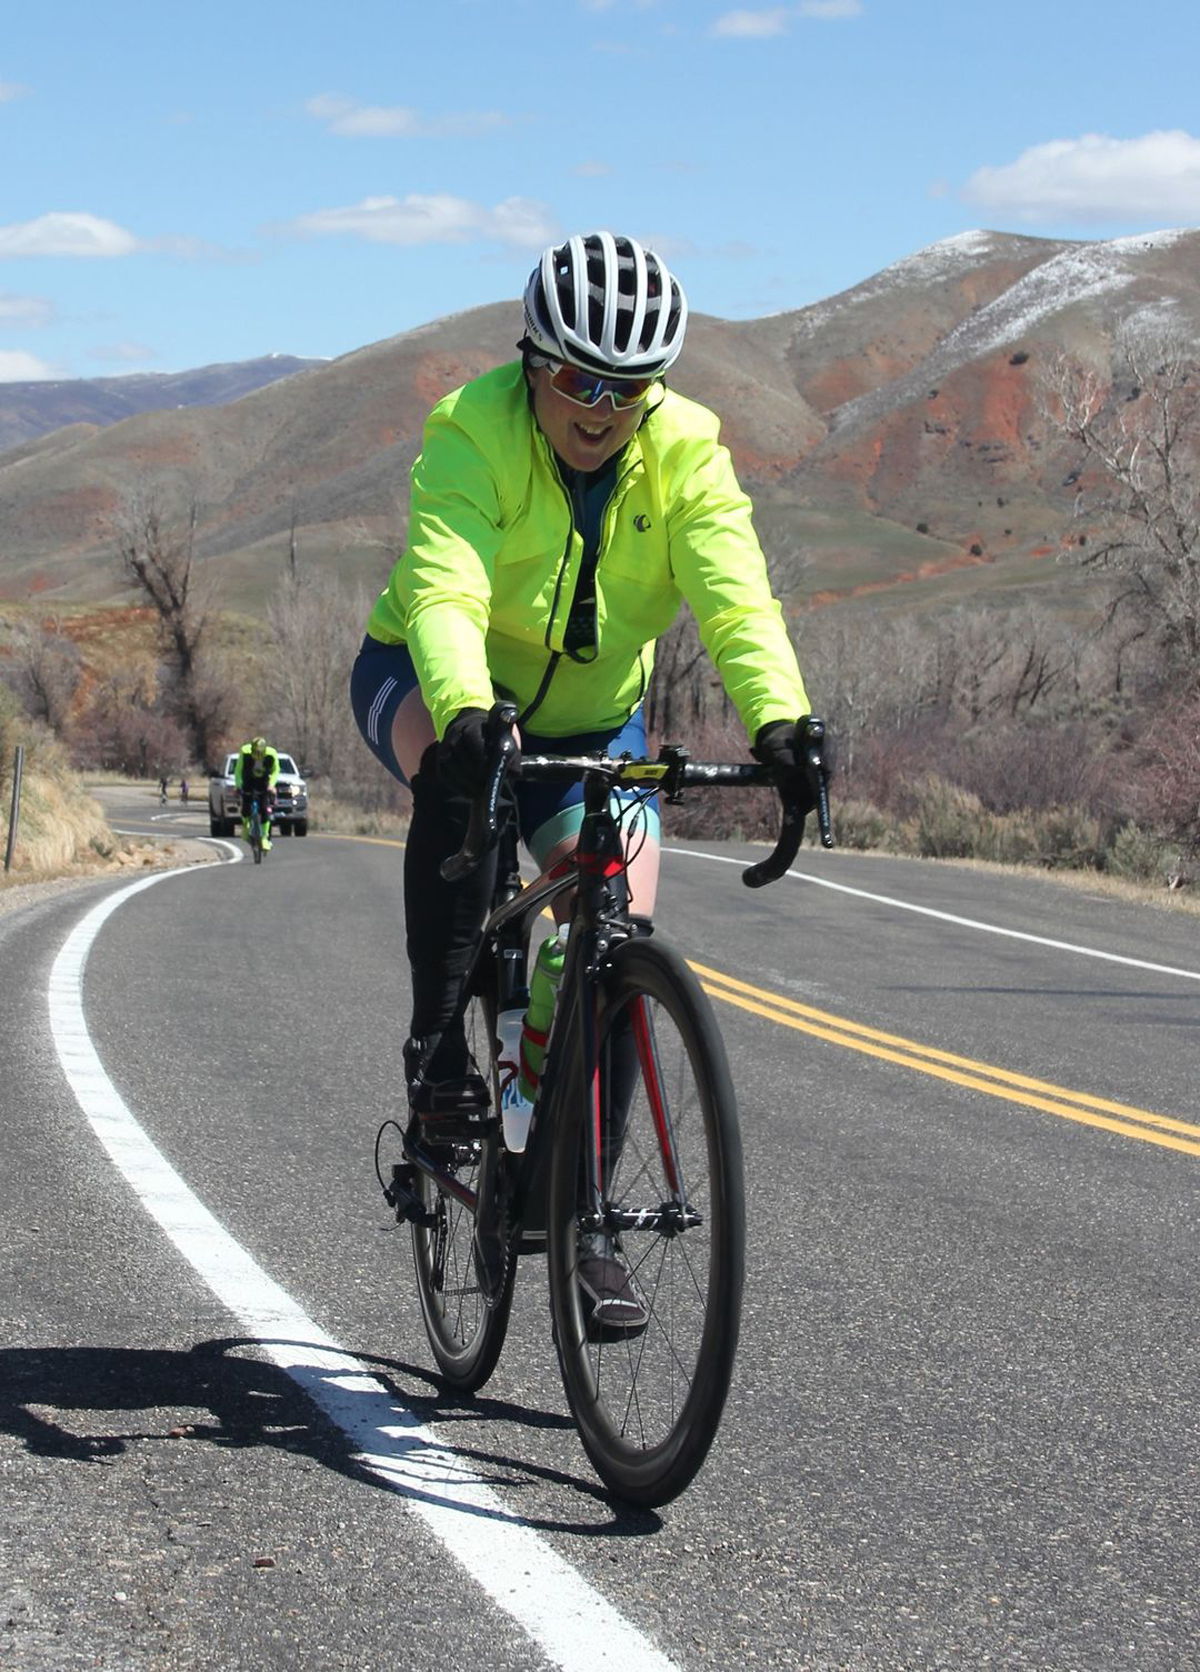 Kelly McPherson at the East Canyon Road Race. Photo by Bri Hoopes